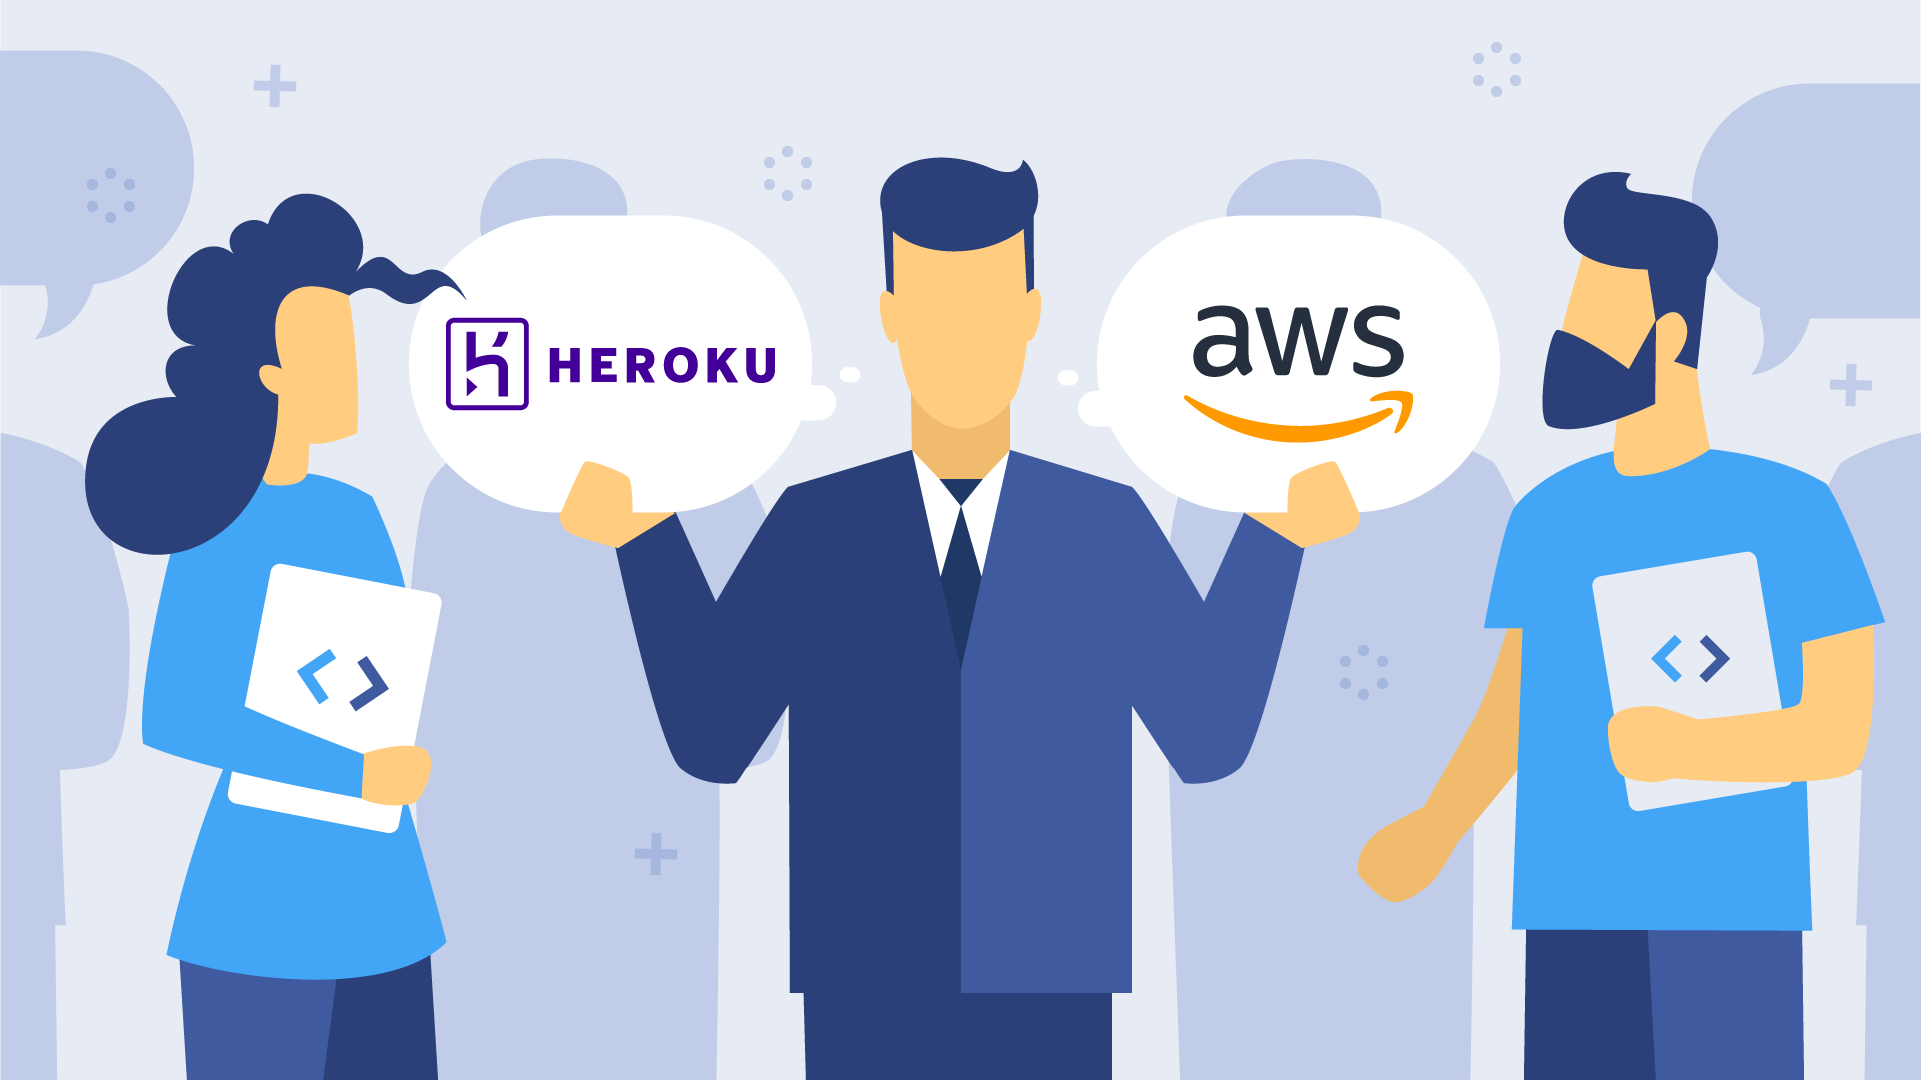 Should you migrate from Heroku to AWS in 2021?